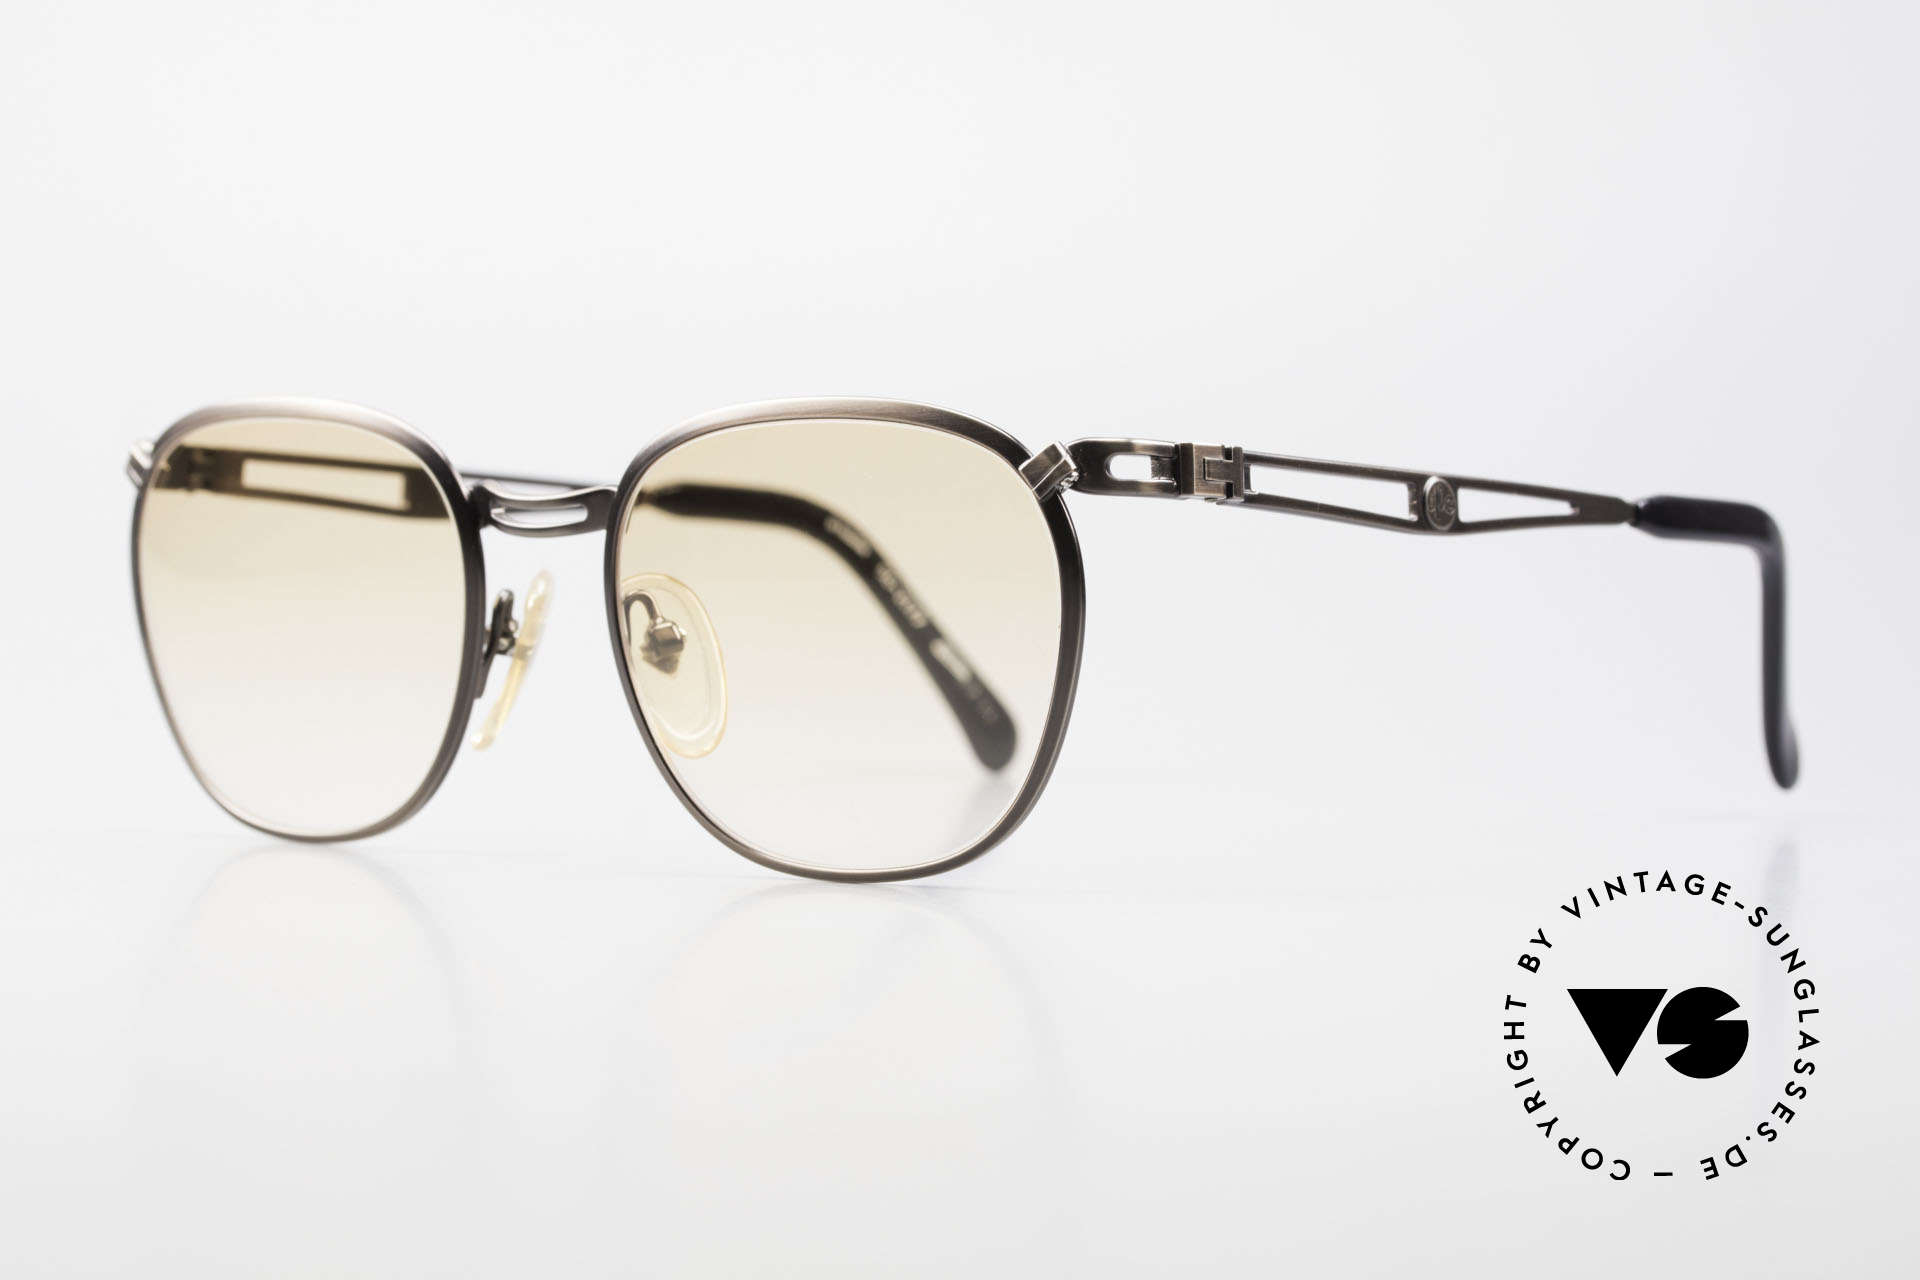 Jean Paul Gaultier 56-2177 Orange Lenses for the Night, but high-end quality (monolithic), typically JPG!, Made for Men and Women